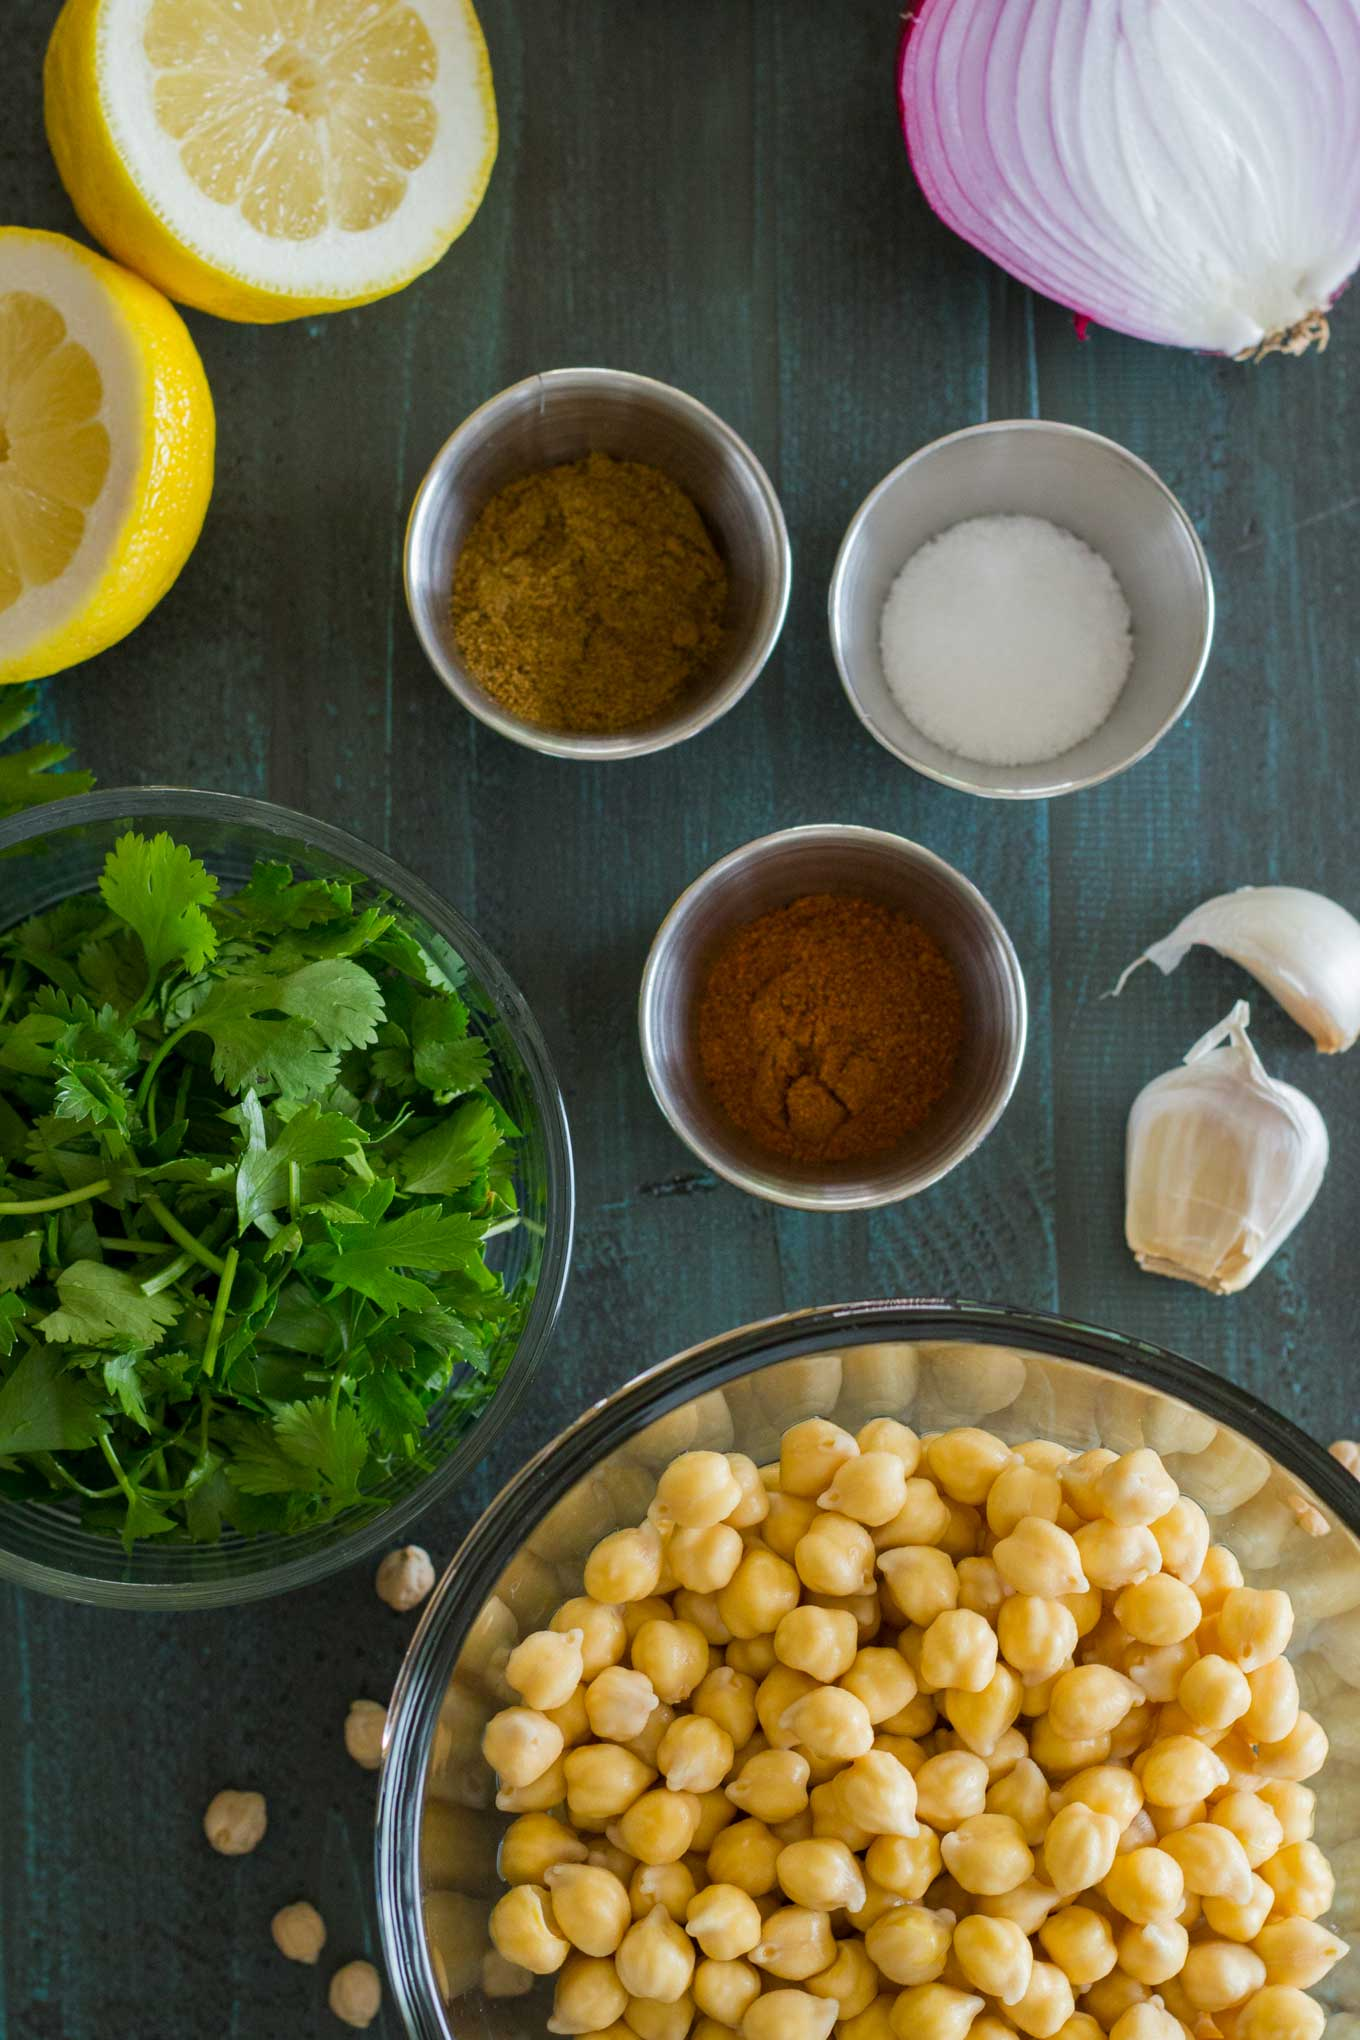 Oven-Baked Falafel ingredients are soaked chickpeas, lemon, parsley, ground cumin, cayenne powder, salt, fresh lemon, and red onion | Plant-based | Oil-free | Vegan | Gluten-free | https://eatwithinyourmeans.com/